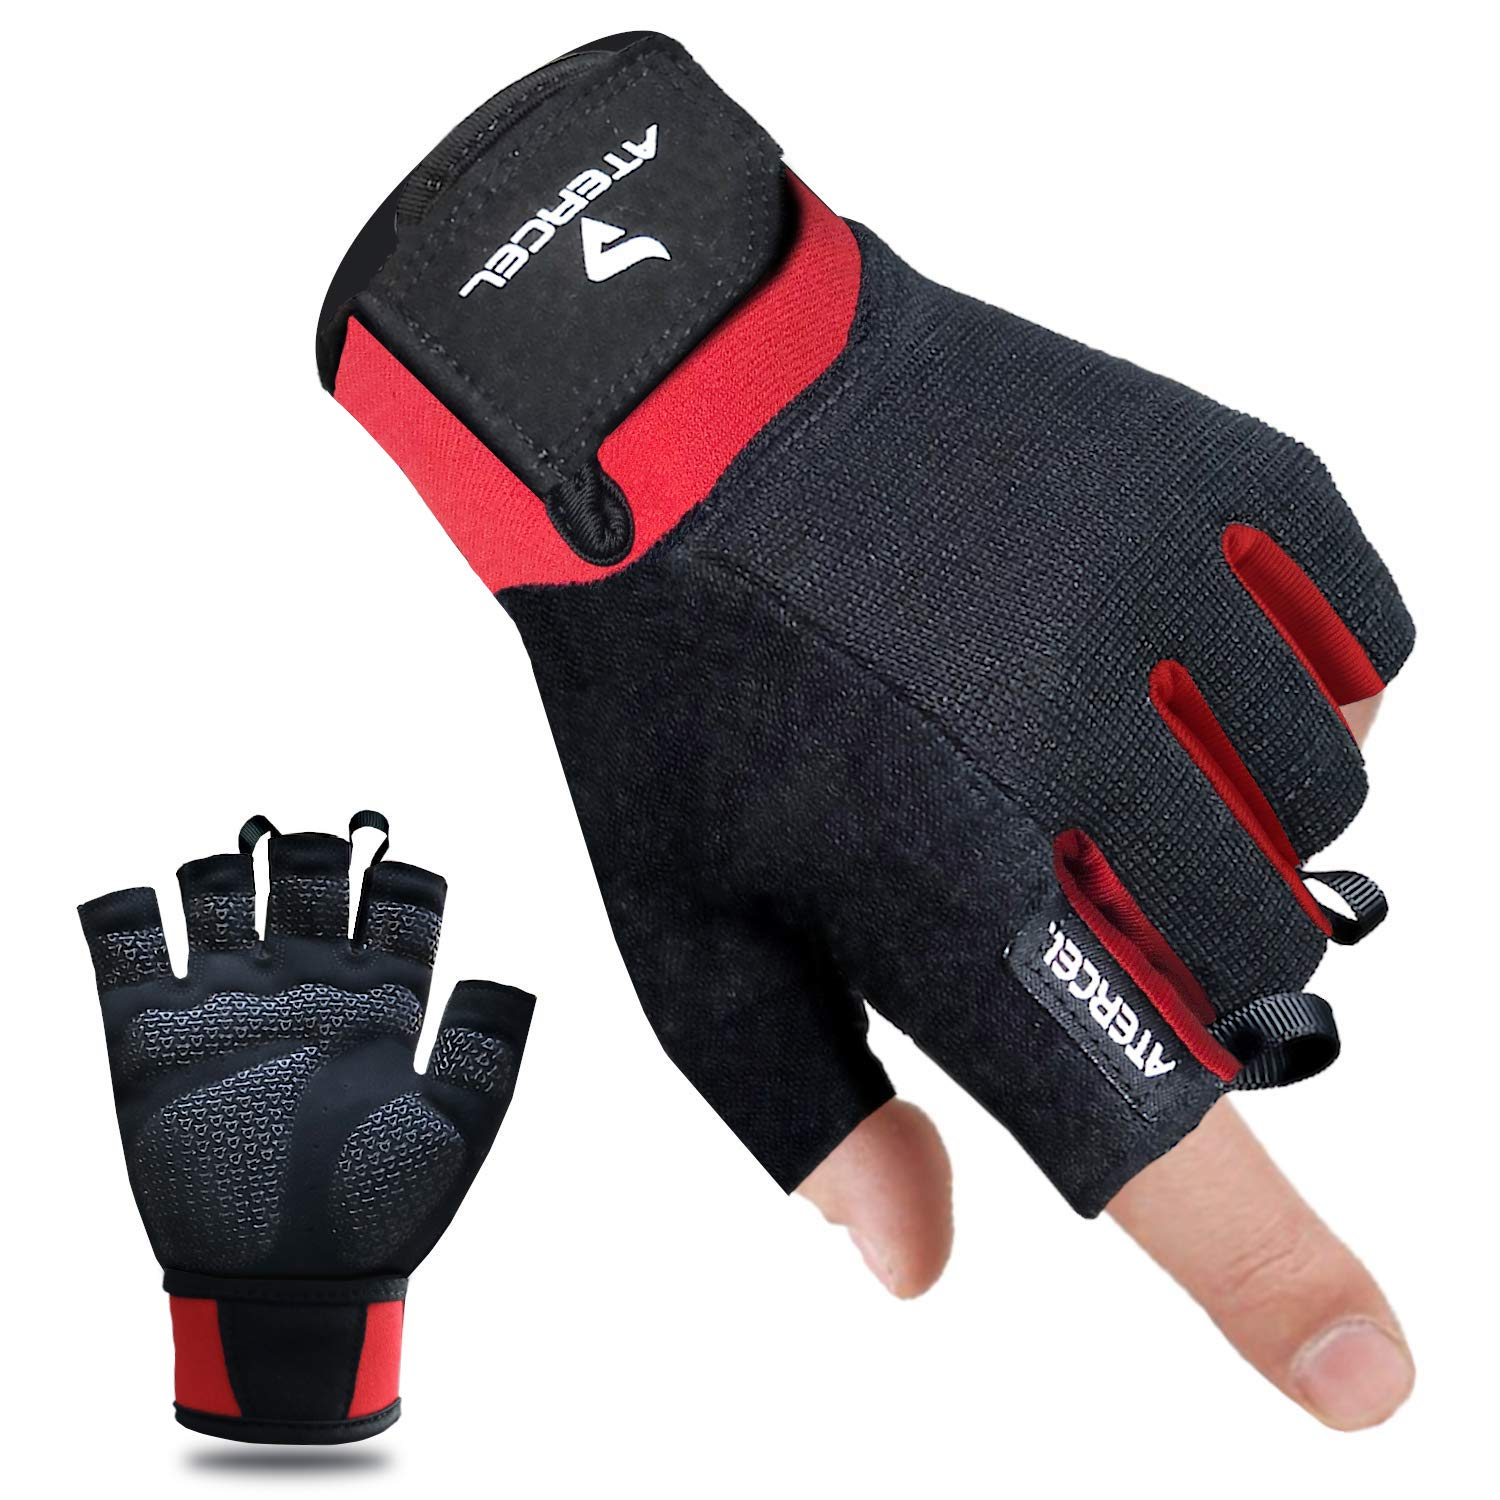 Atercel Workout Gloves, Best Exercise Gloves for Weight Lifting, Crossfit, Cycling, Gym, Training, Breathable & Snug fit, for Men & Women (Red, S (Fits 6.9''-7.5'')) by Atercel